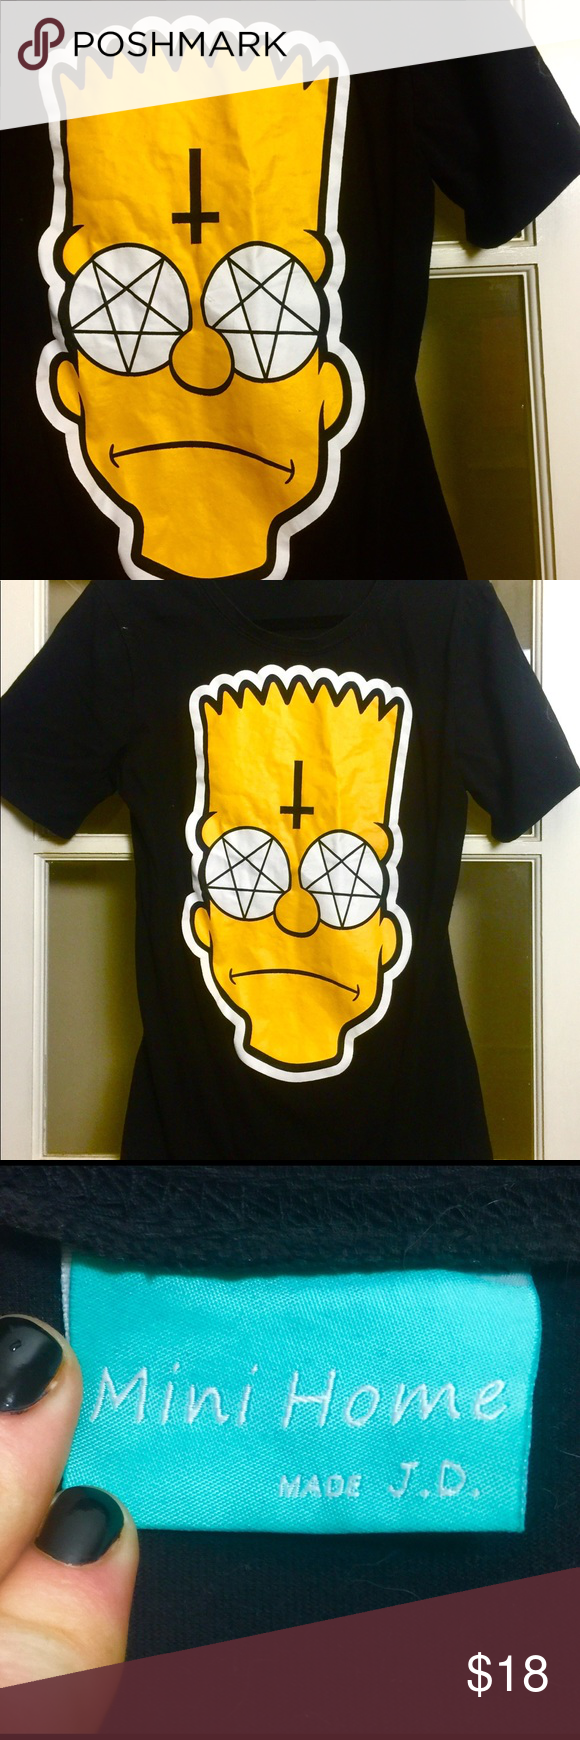 adc0da87 Satanic Temple of Springfield Bart Simpson Tee Love witchcraft? Love The  Simpsons! Then, BOY HOWDY is this the shirt for you! Mini Home Made by J.D.  Indie ...